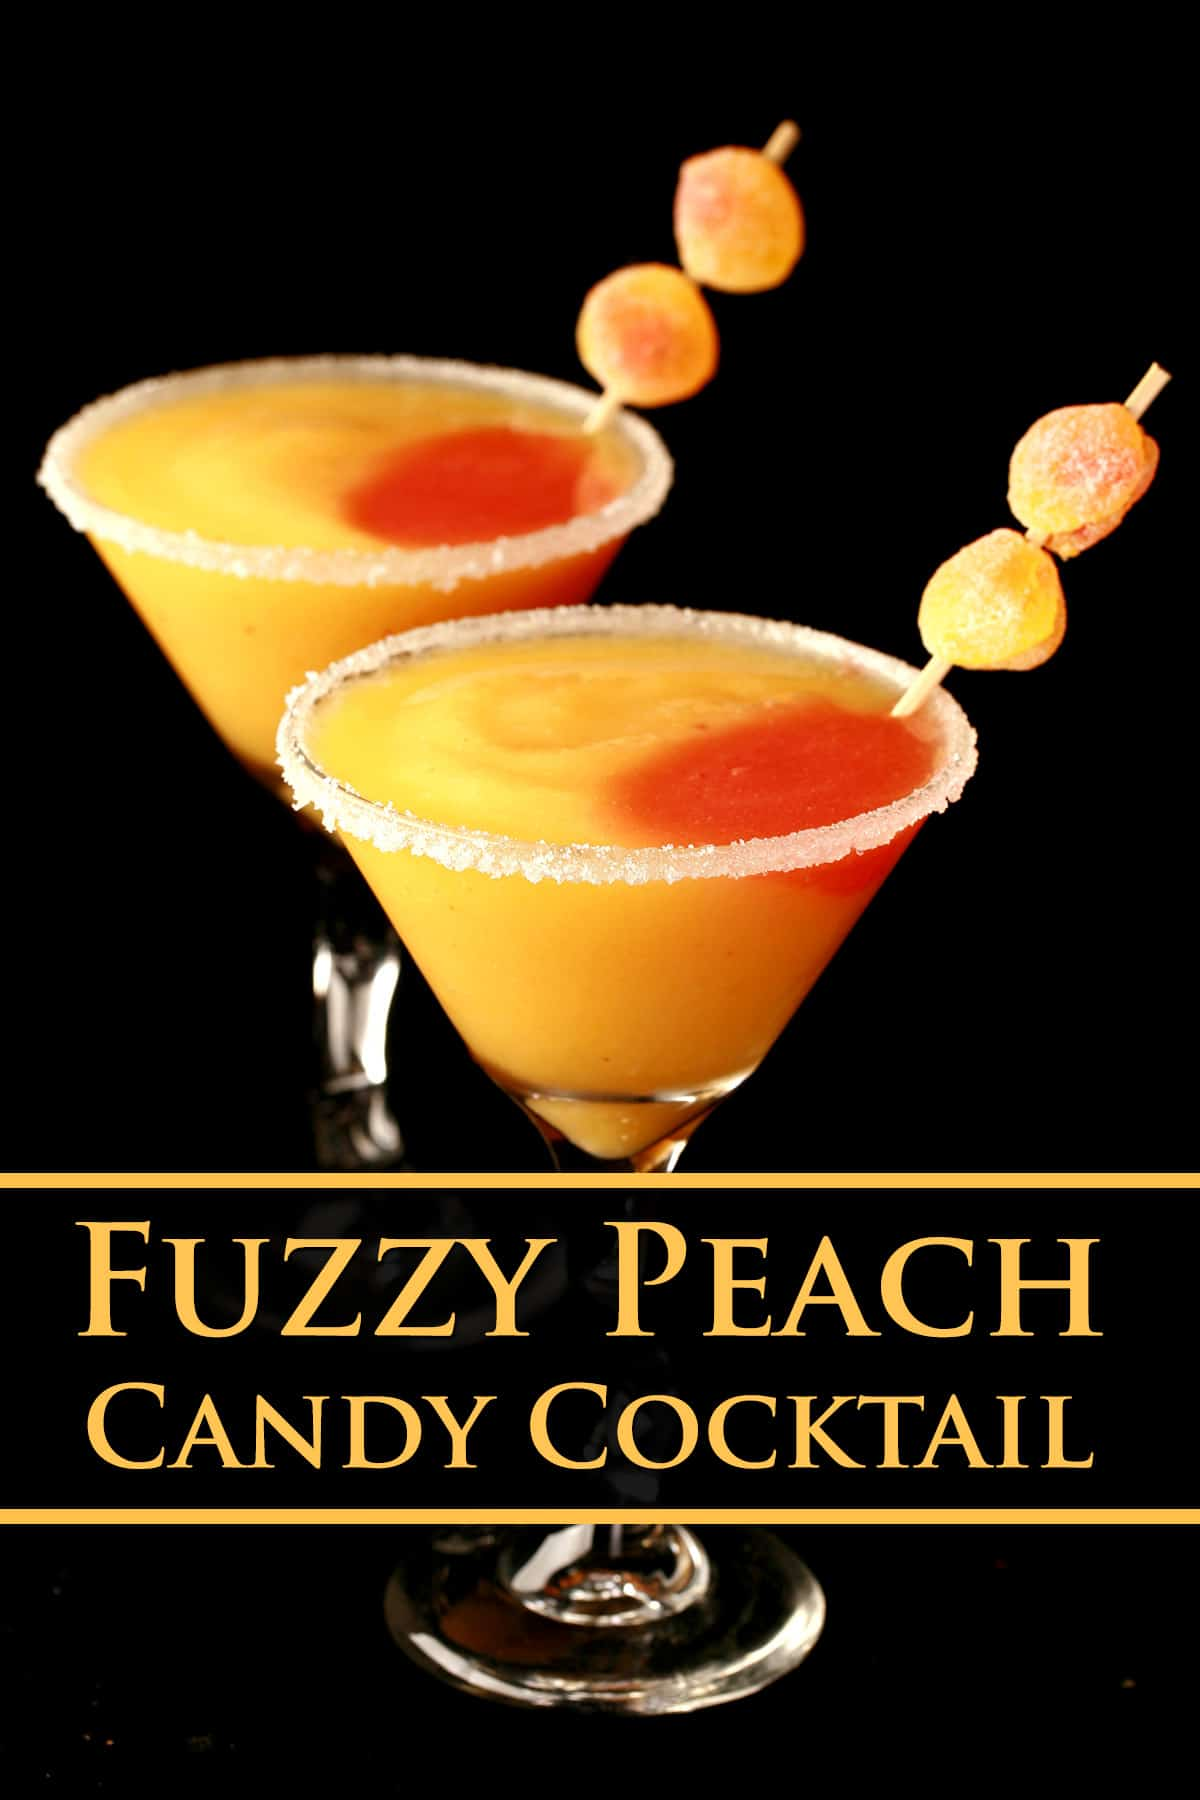 Two martini cocktail glasses with fuzzy peach candy cocktail - a peach coloured slush with a round section of red slush in it, garnished with gummy candies.